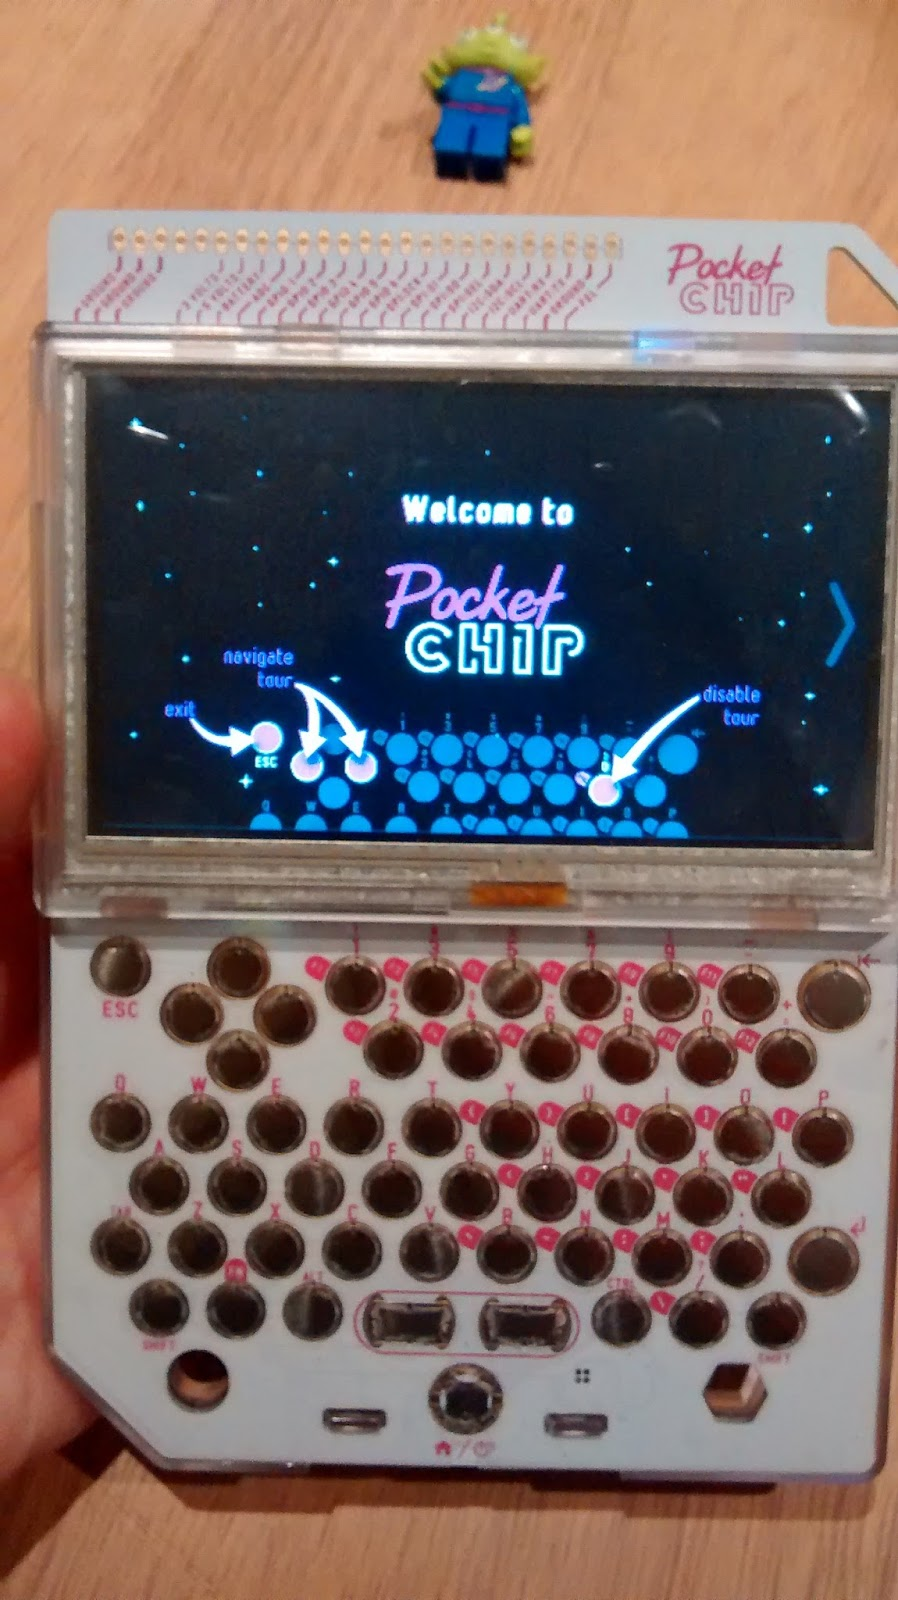 Pocketchip web browser